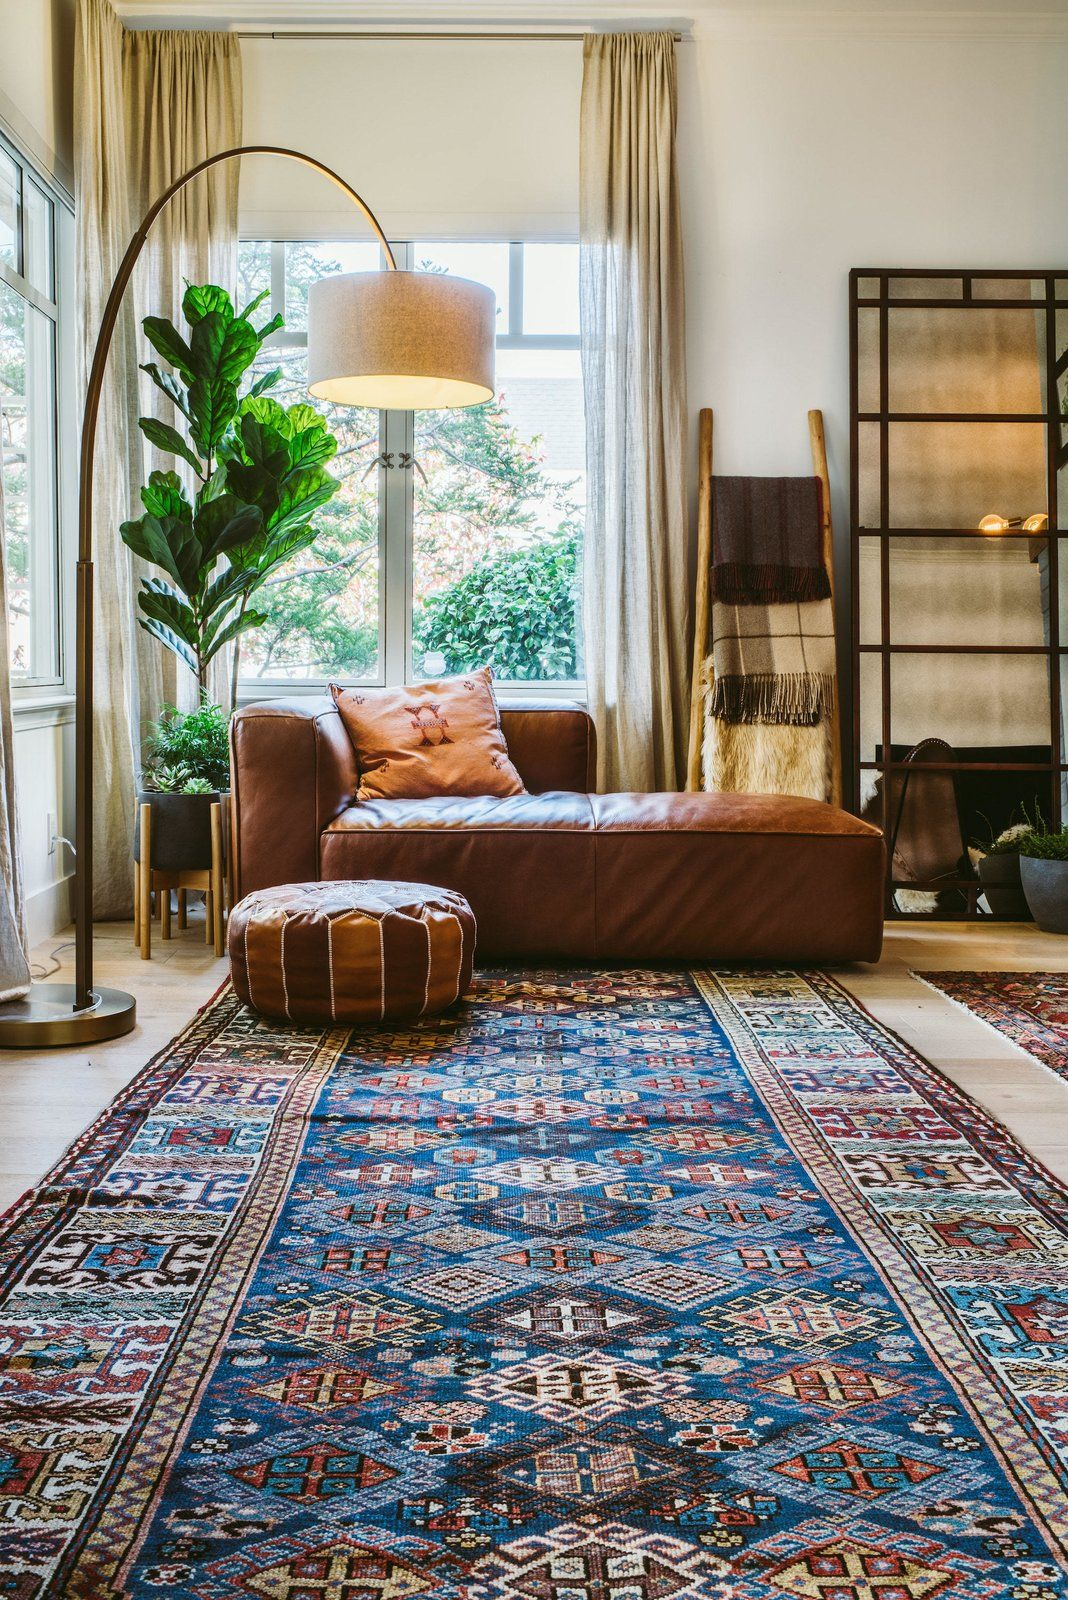 A Mediterranean Style Urban Oasis With Warm Industrial And Bohemian Bedroom Seating Area Stylish Living Room Warm Home Decor #warm #industrial #living #room